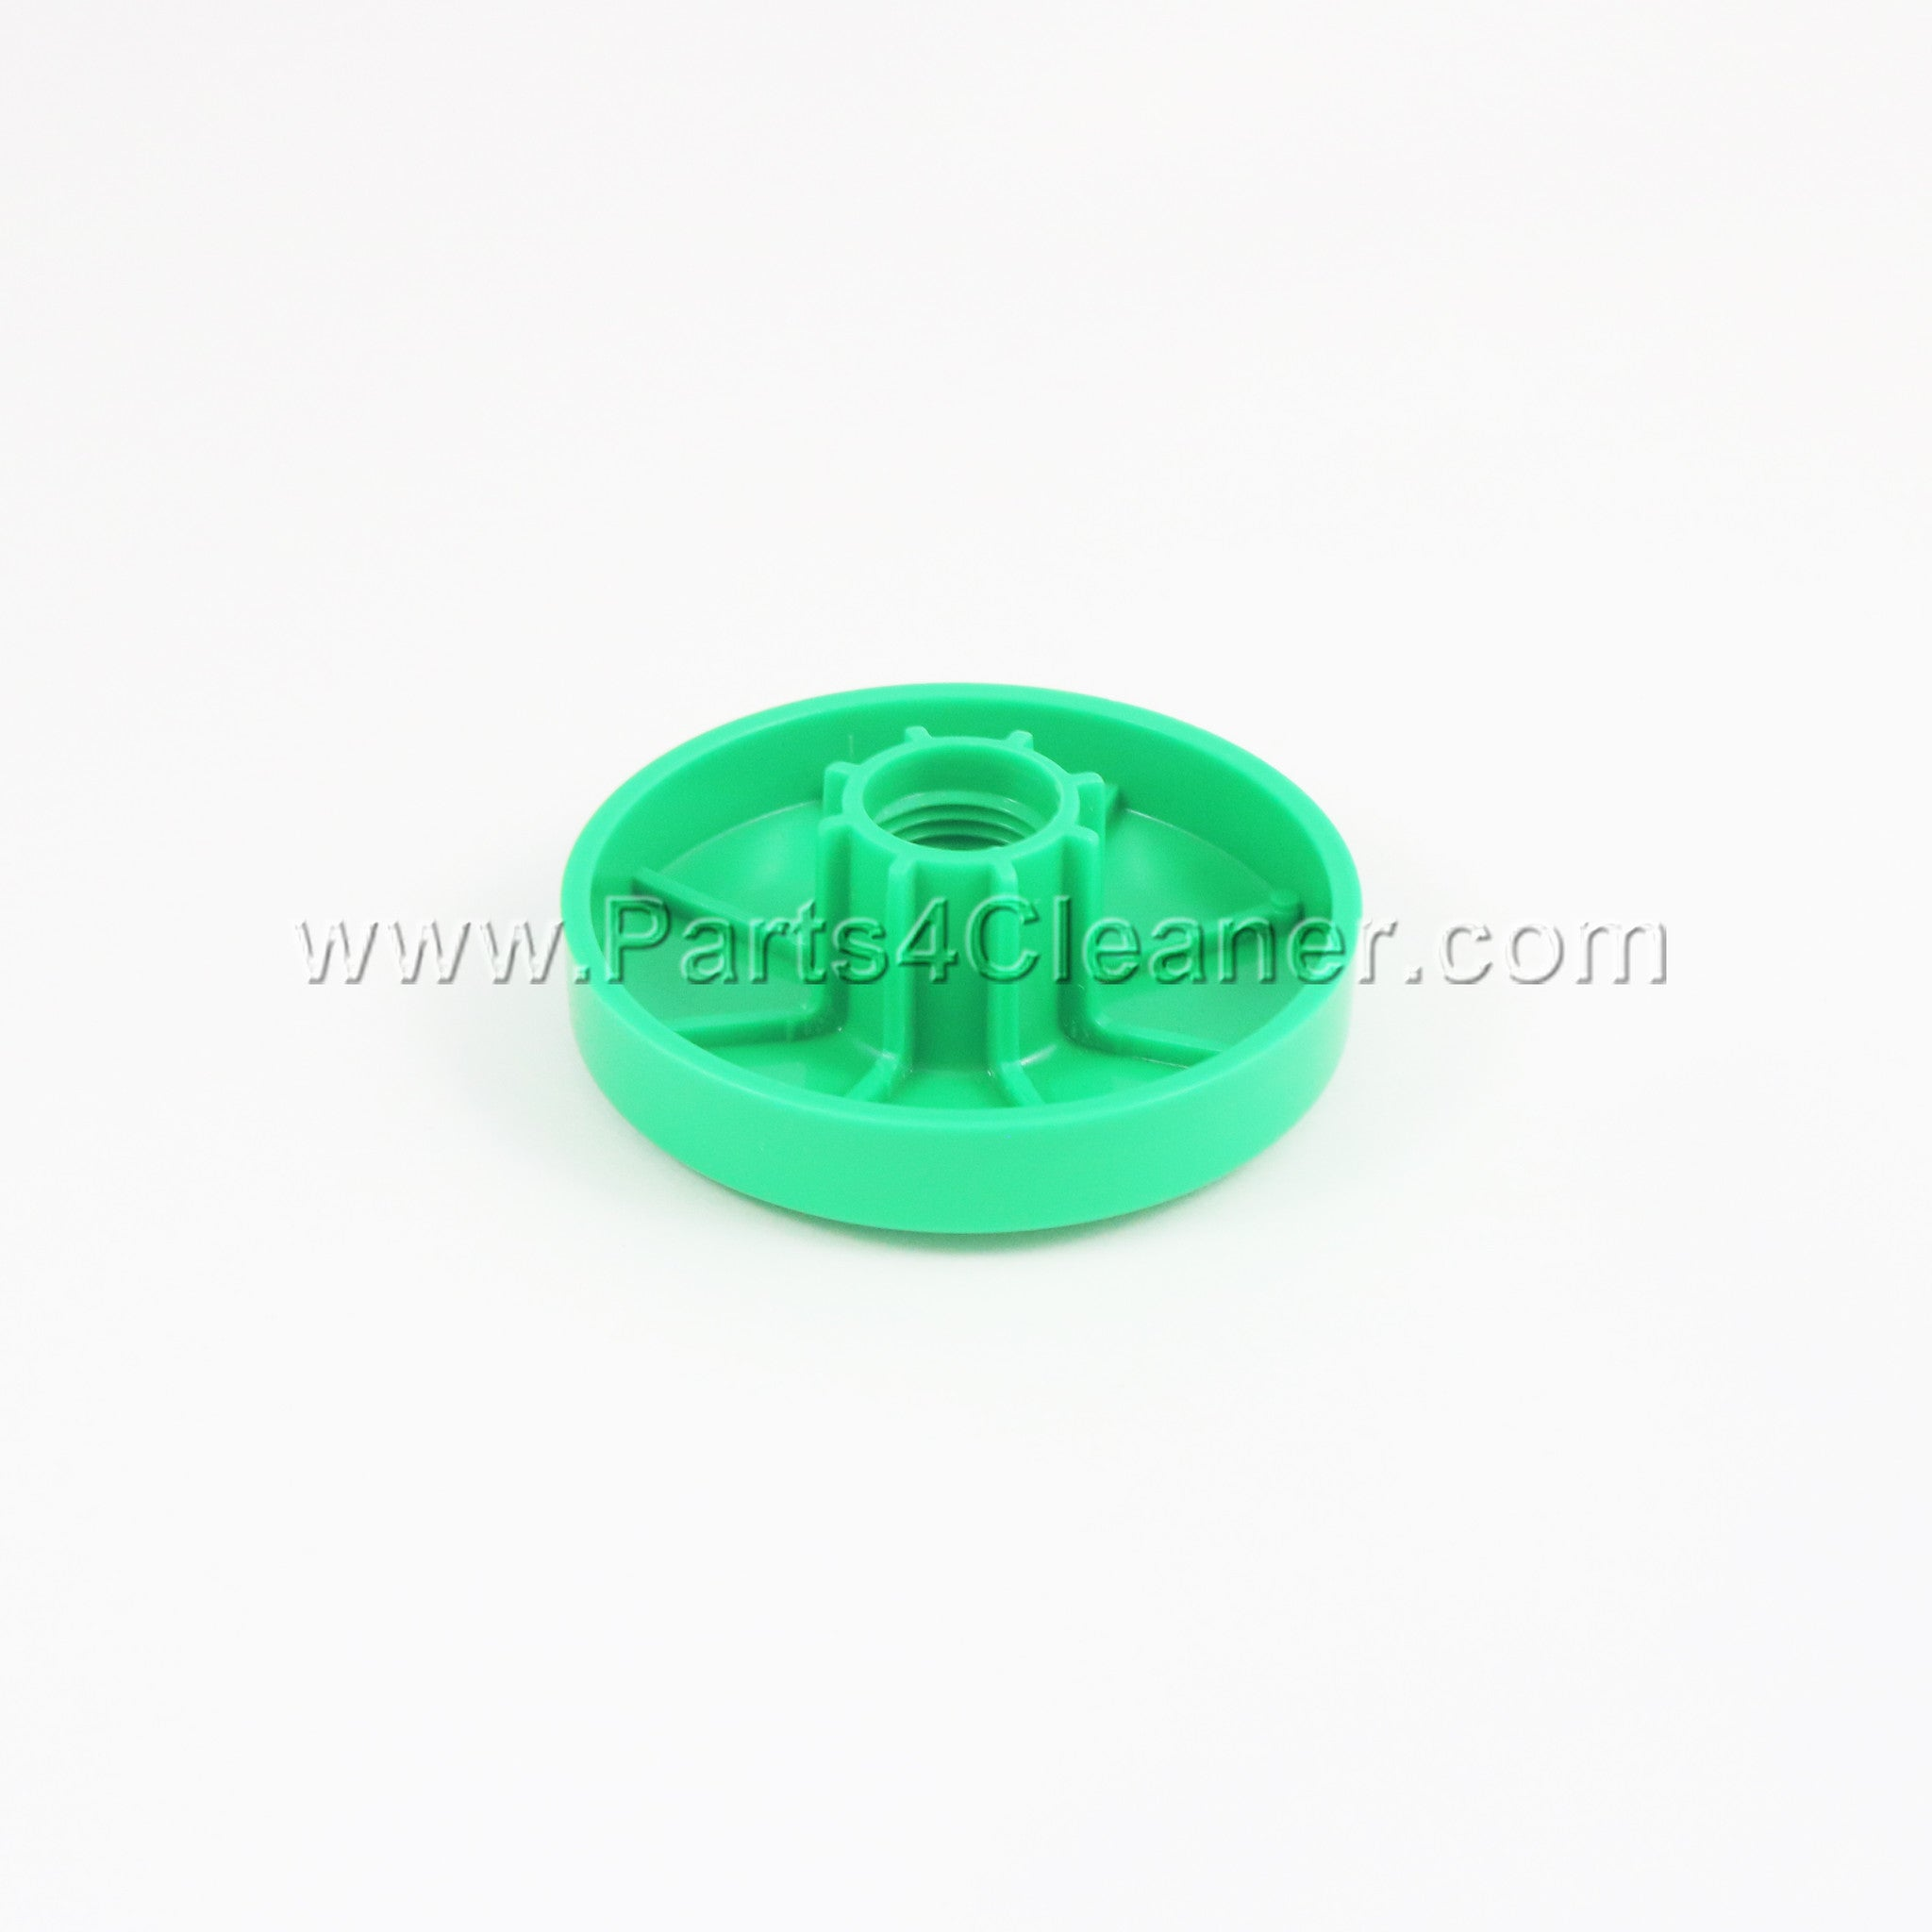 UNIPRESS GREEN BUTTON (PN30737-01)